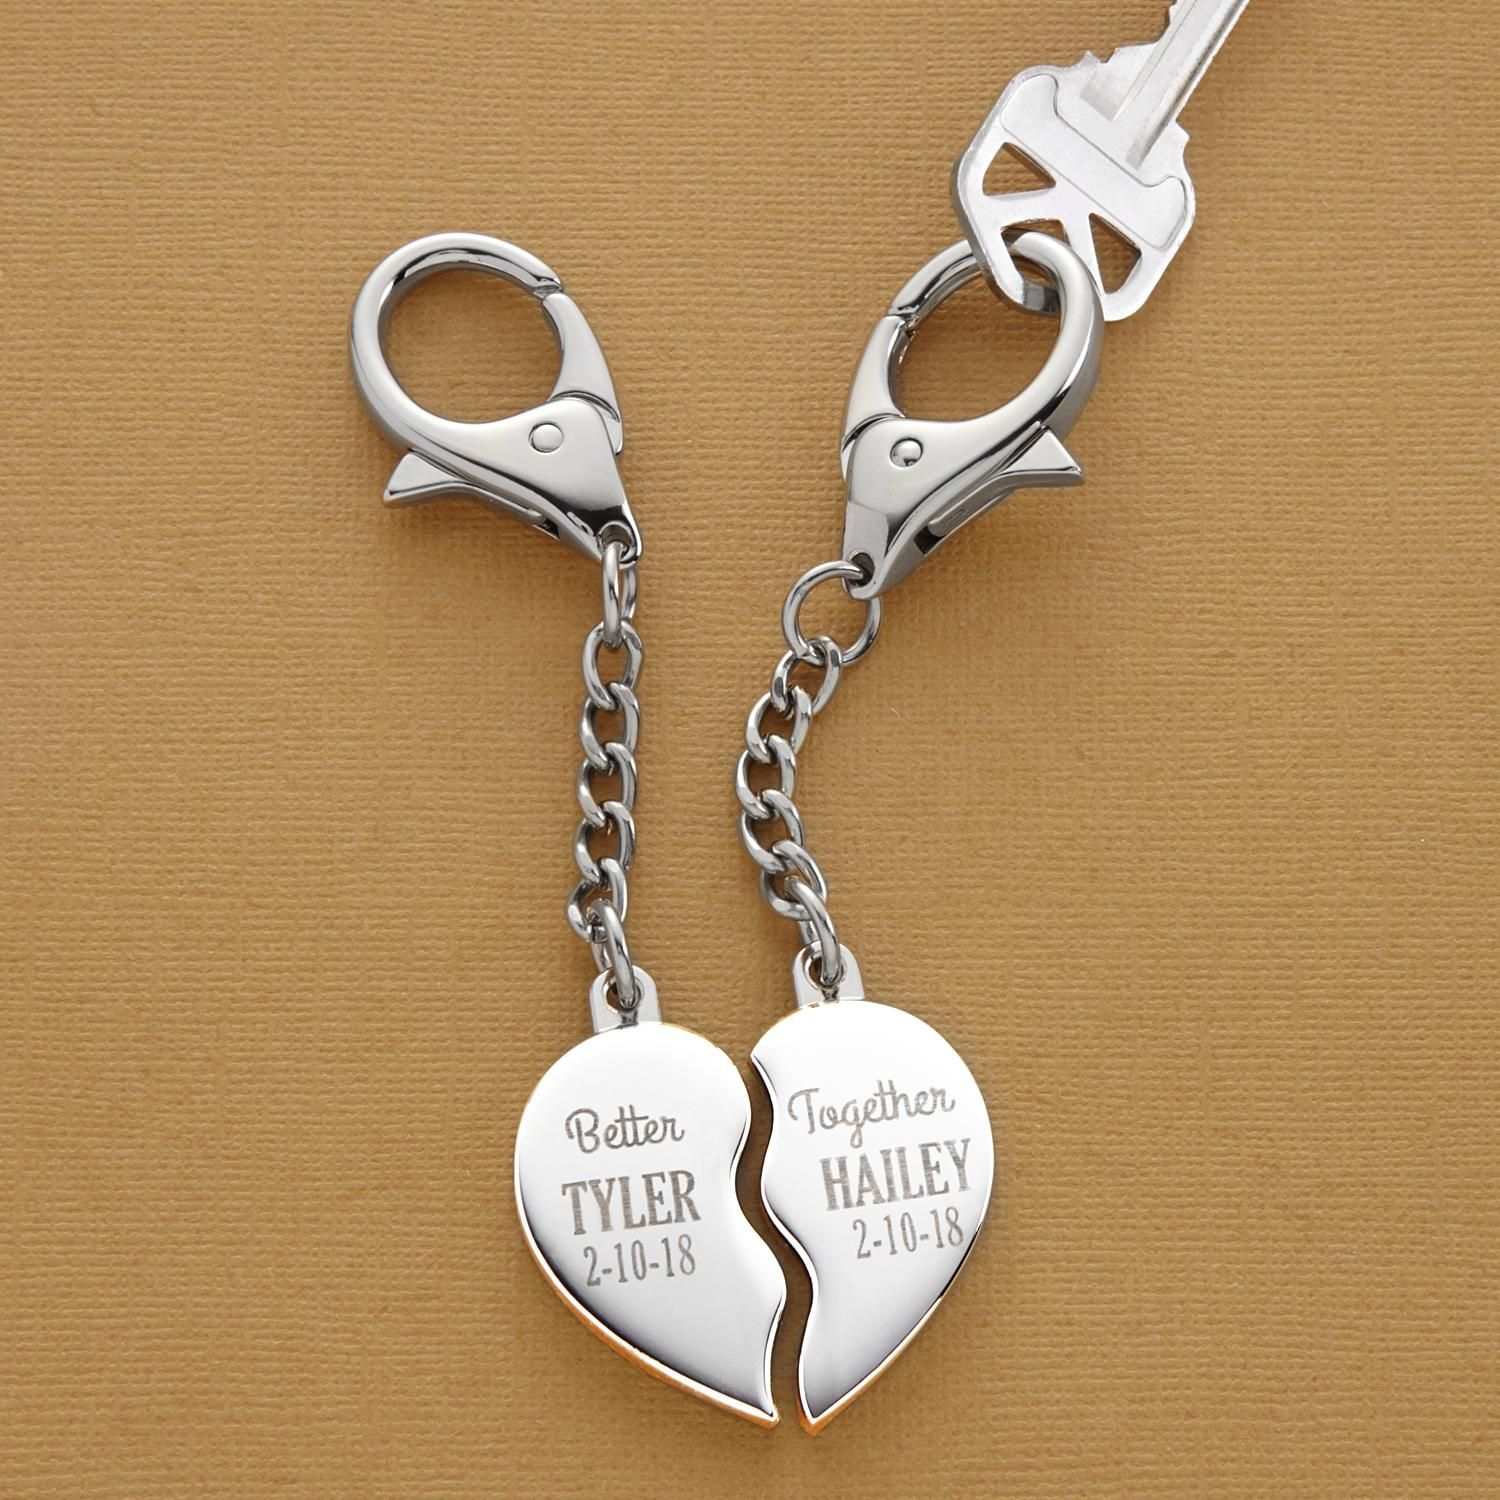 Better Together Heart Key Chain - Diy gifts for boyfriend, Romantic gifts for him, Girlfriend gifts, Diy gifts for him, Thoughtful gifts for him, Boyfriend gifts - A Personal Creations Exclusive! Celebrate true love with a heart that's only complete when the two of you are together